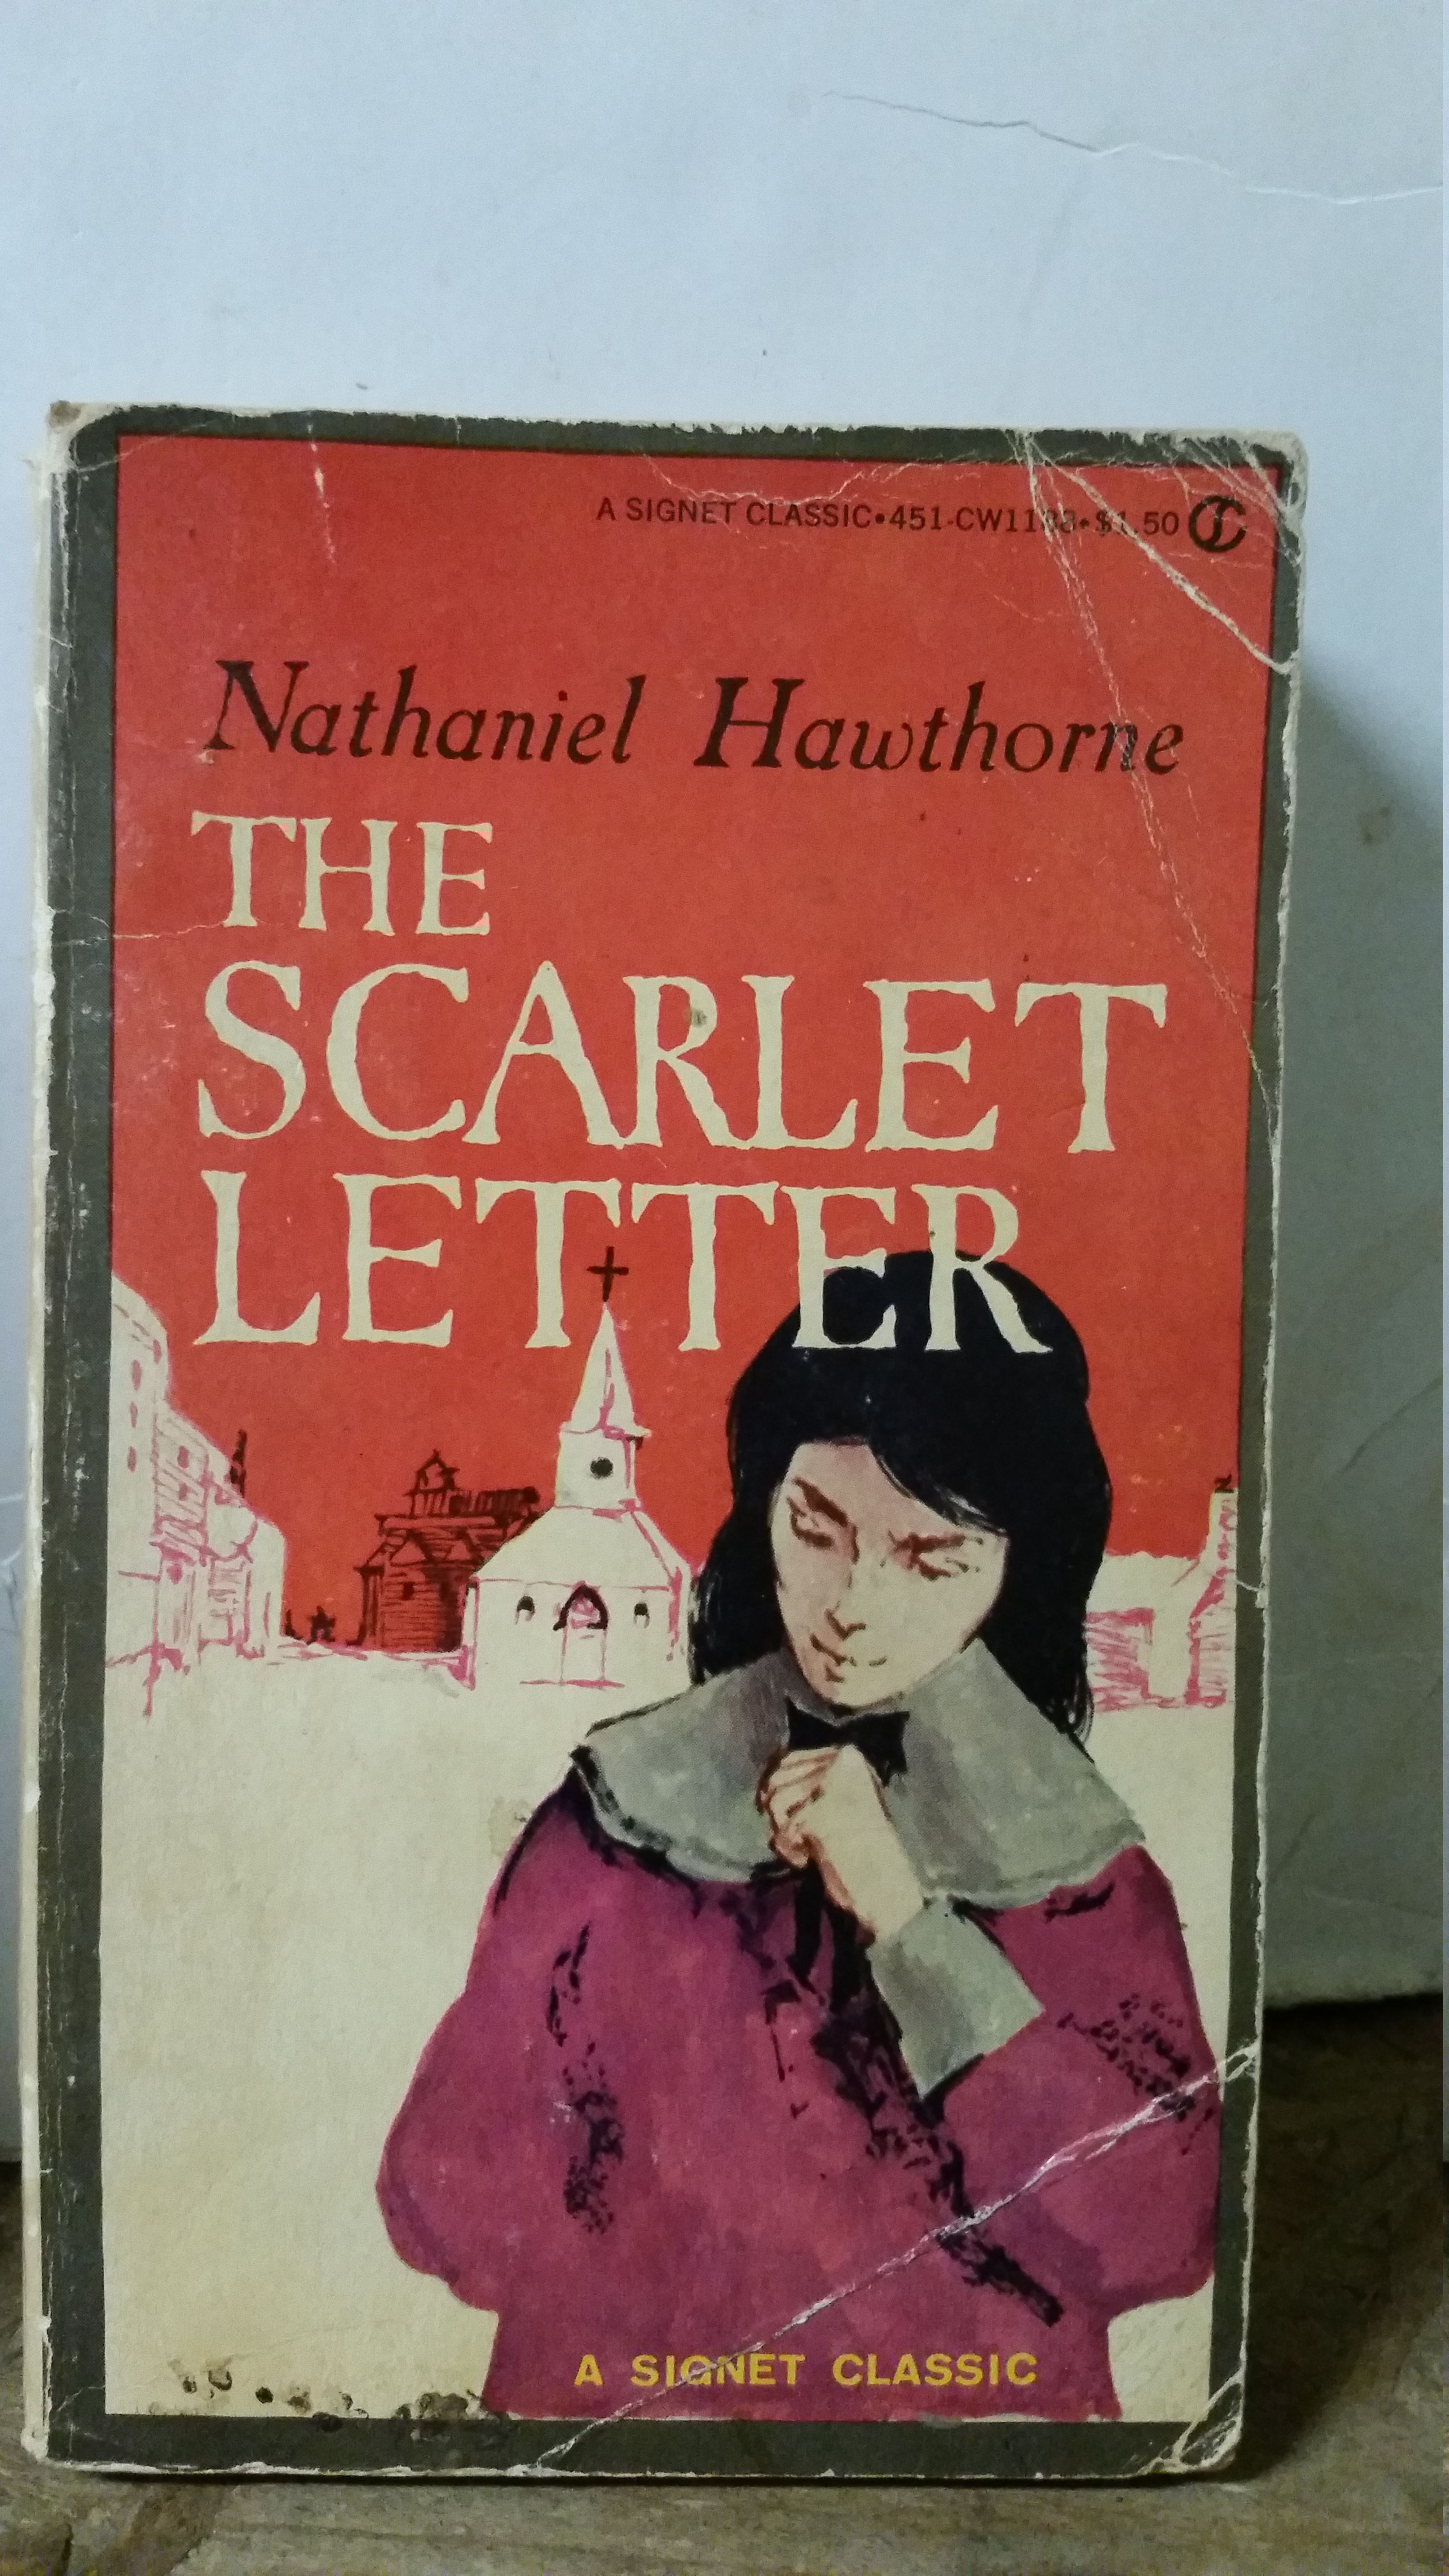 conflicts in the scarlet letter by nathaniel hawthorne Free essay: conflict in nathaniel hawthorne's the scarlet letter conflict can take on many forms in one's life, such as conflict with self, with society.